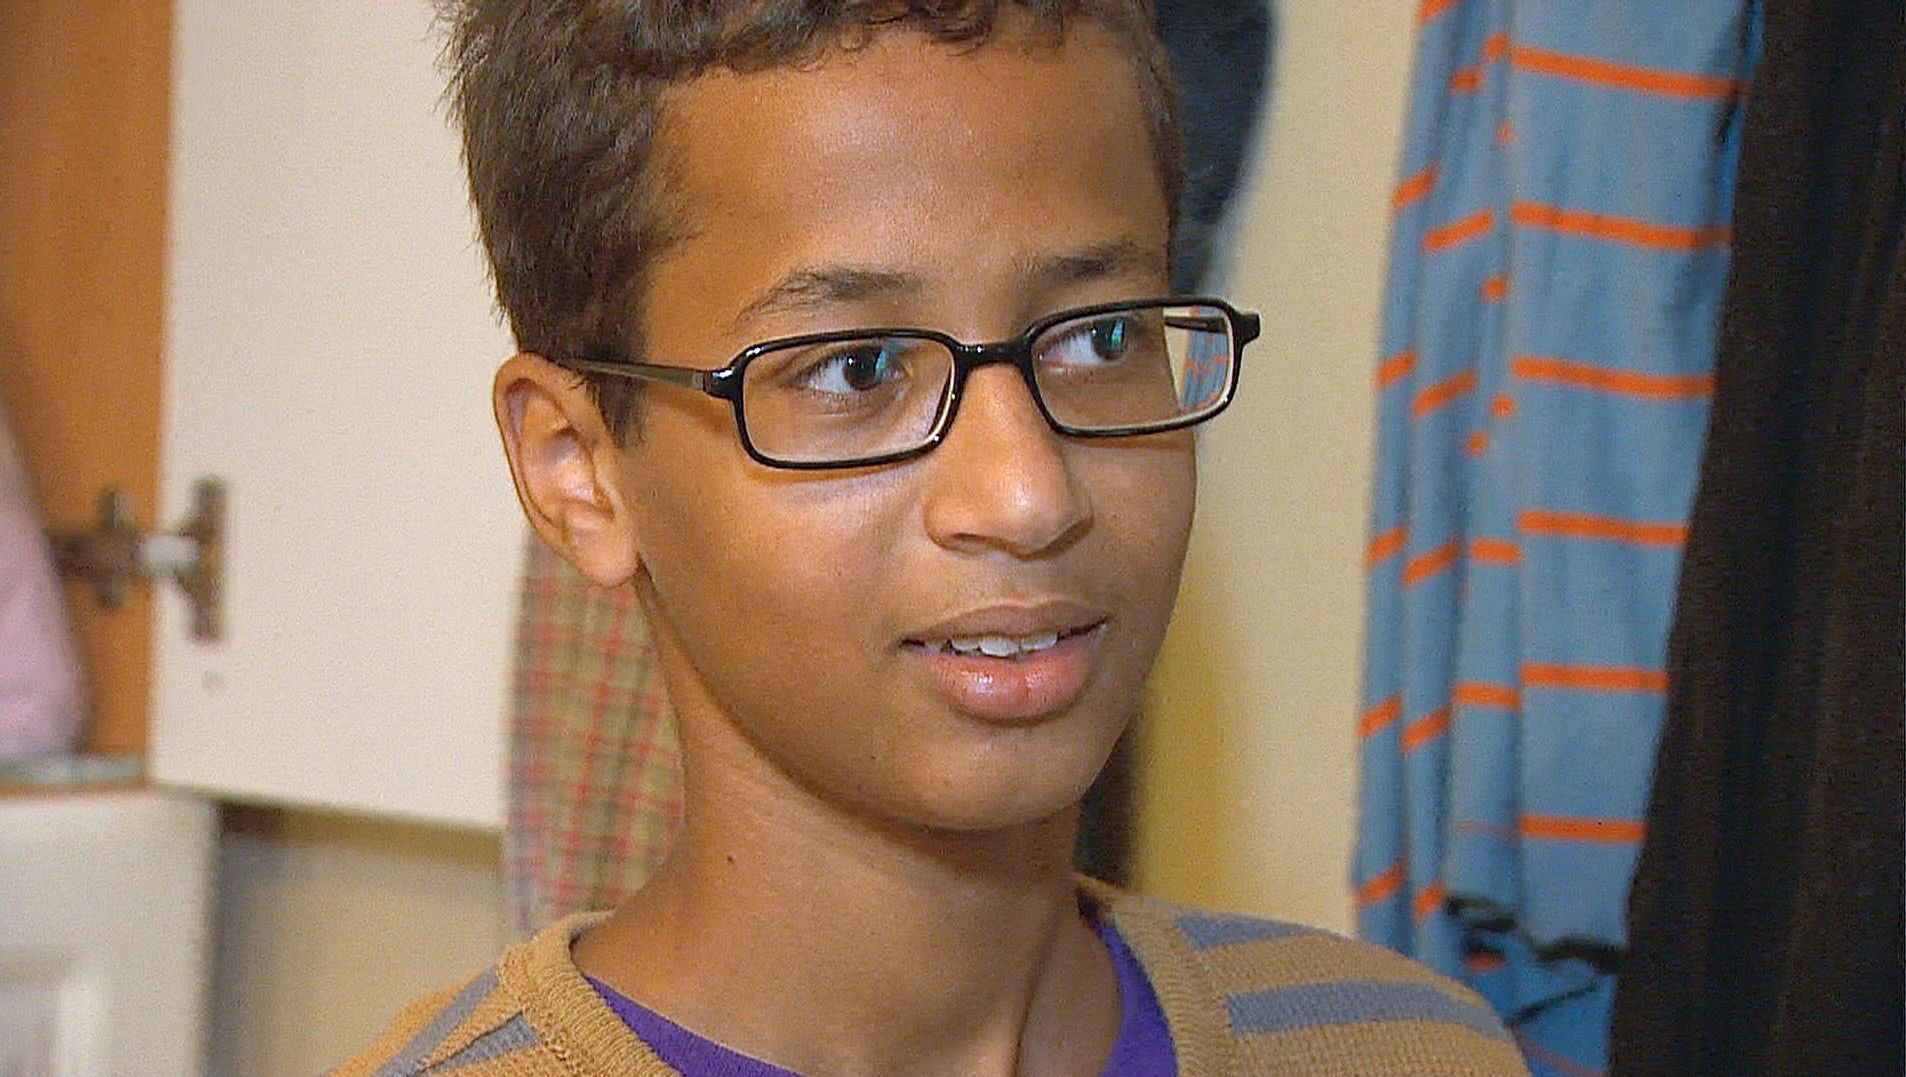 Ahmed Mohamed, 14, was detained after police said a suspicious device was found inside his pencil box at MacArthur High School.